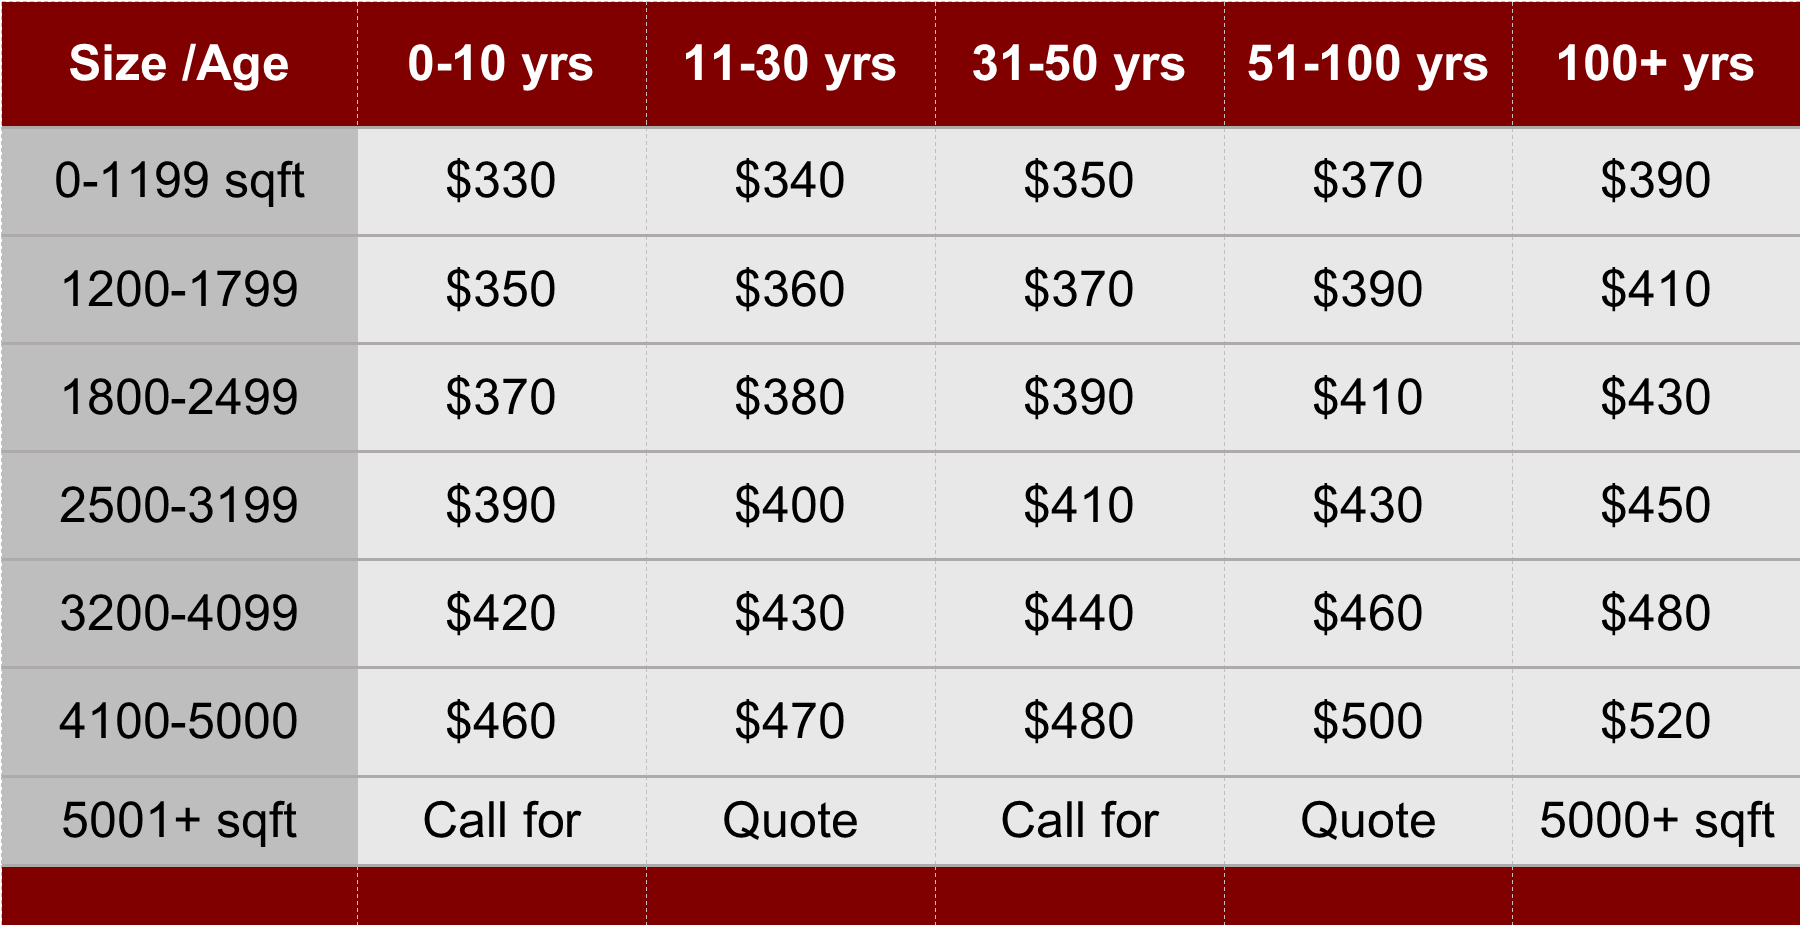 Pricing for Home Inspection in Chattanooga